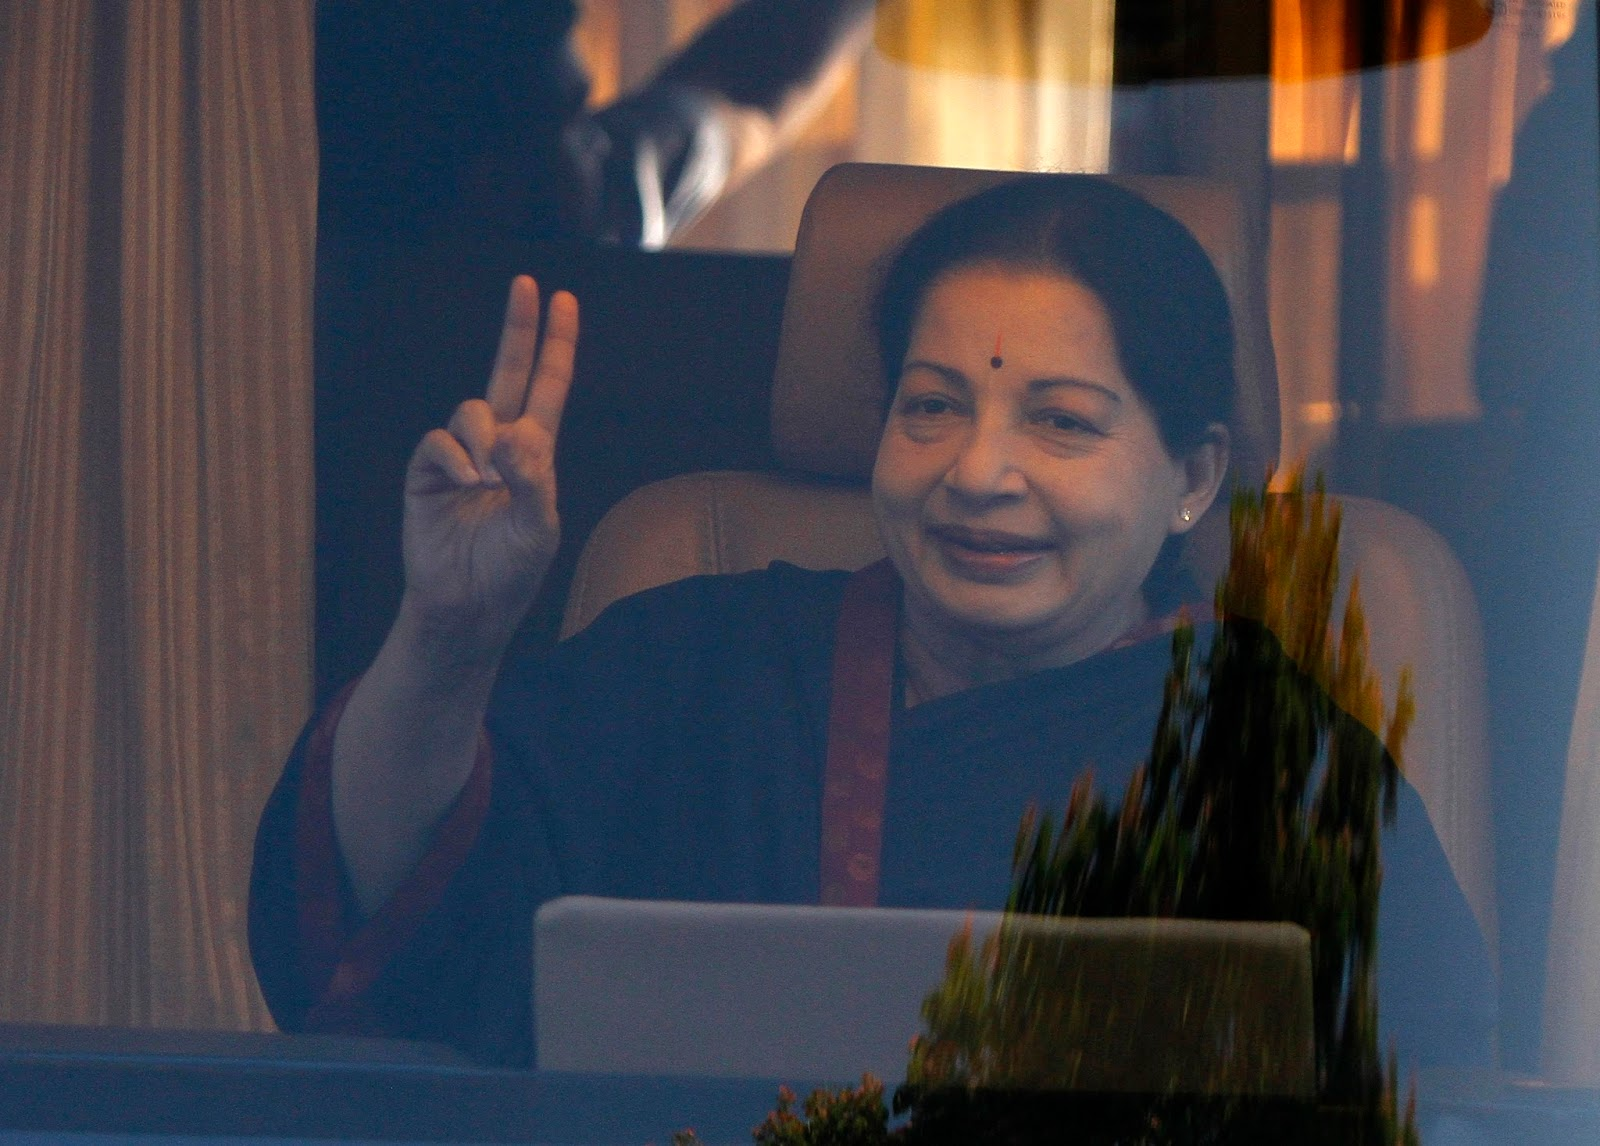 Parliament adjourned after tributes to Jayalalithaa